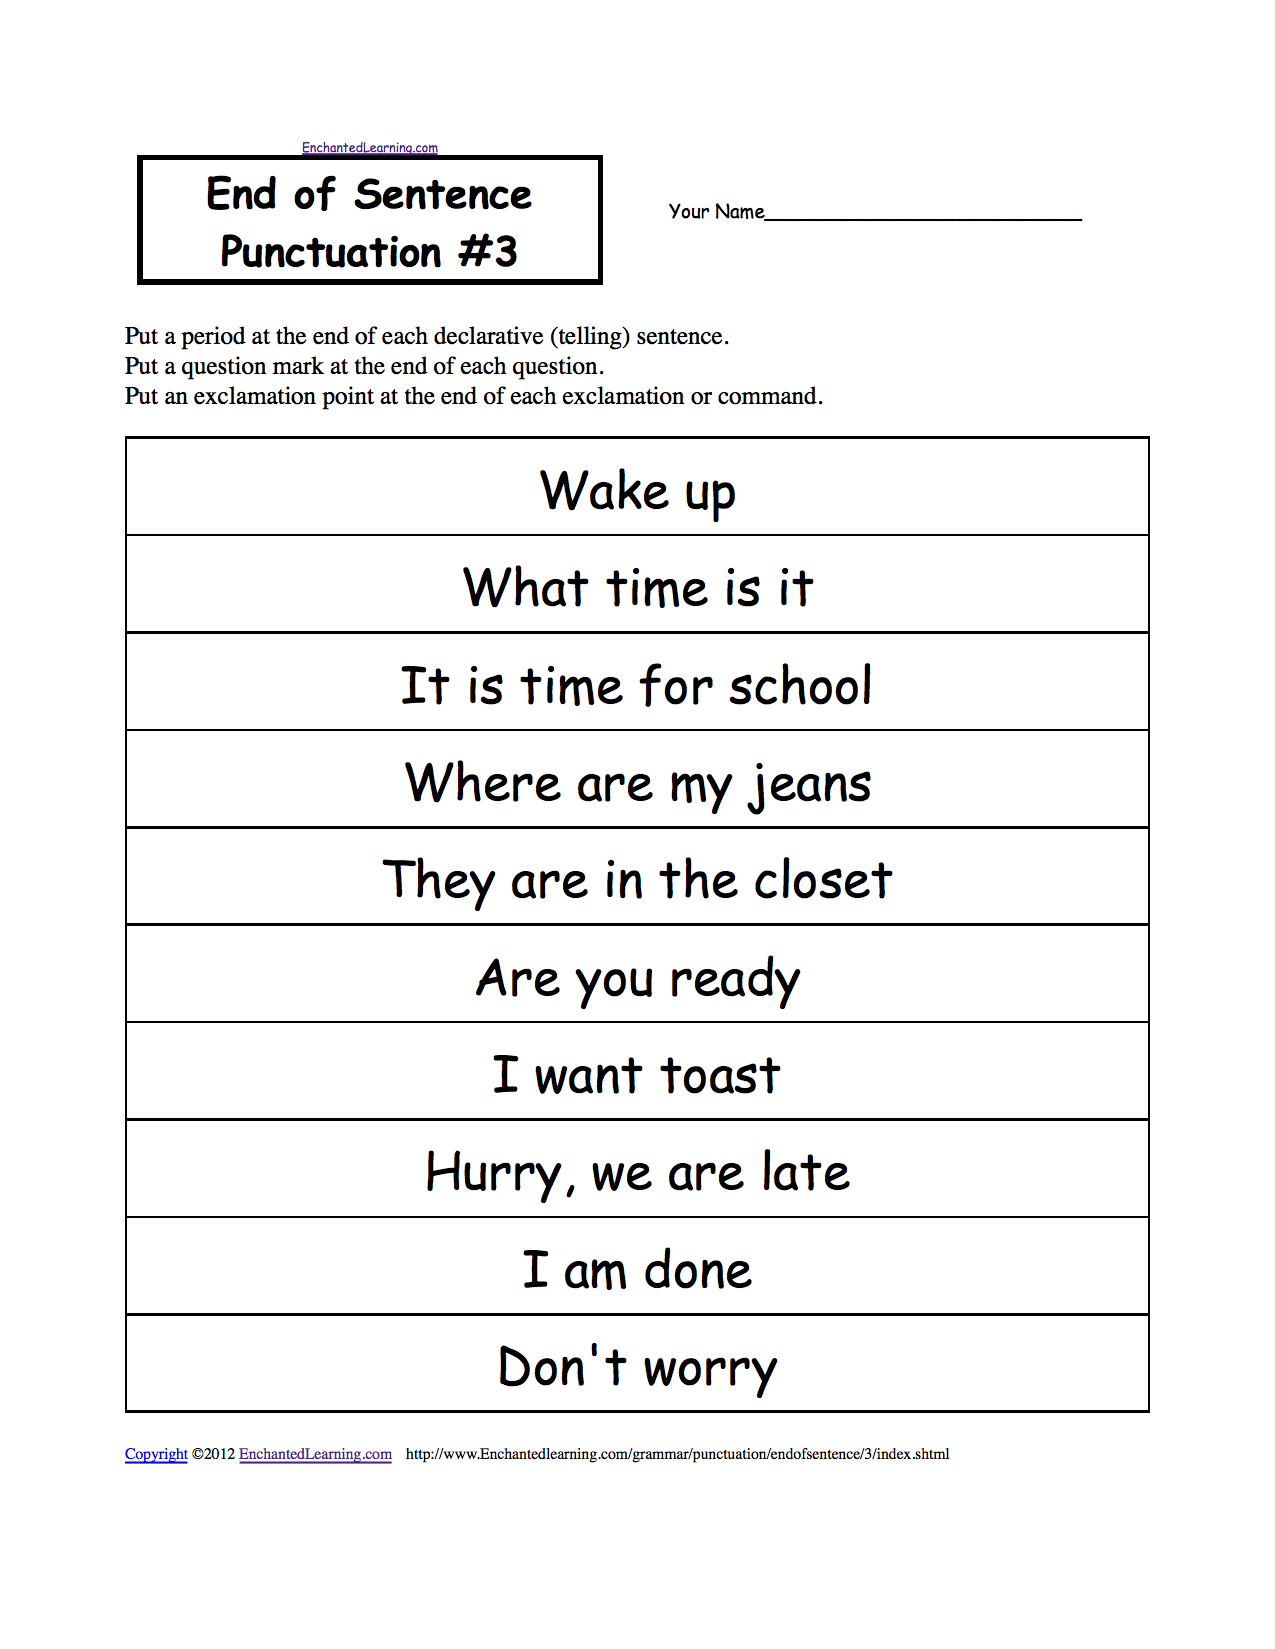 Punctuation Marks EnchantedLearning – Correcting Sentences Worksheets